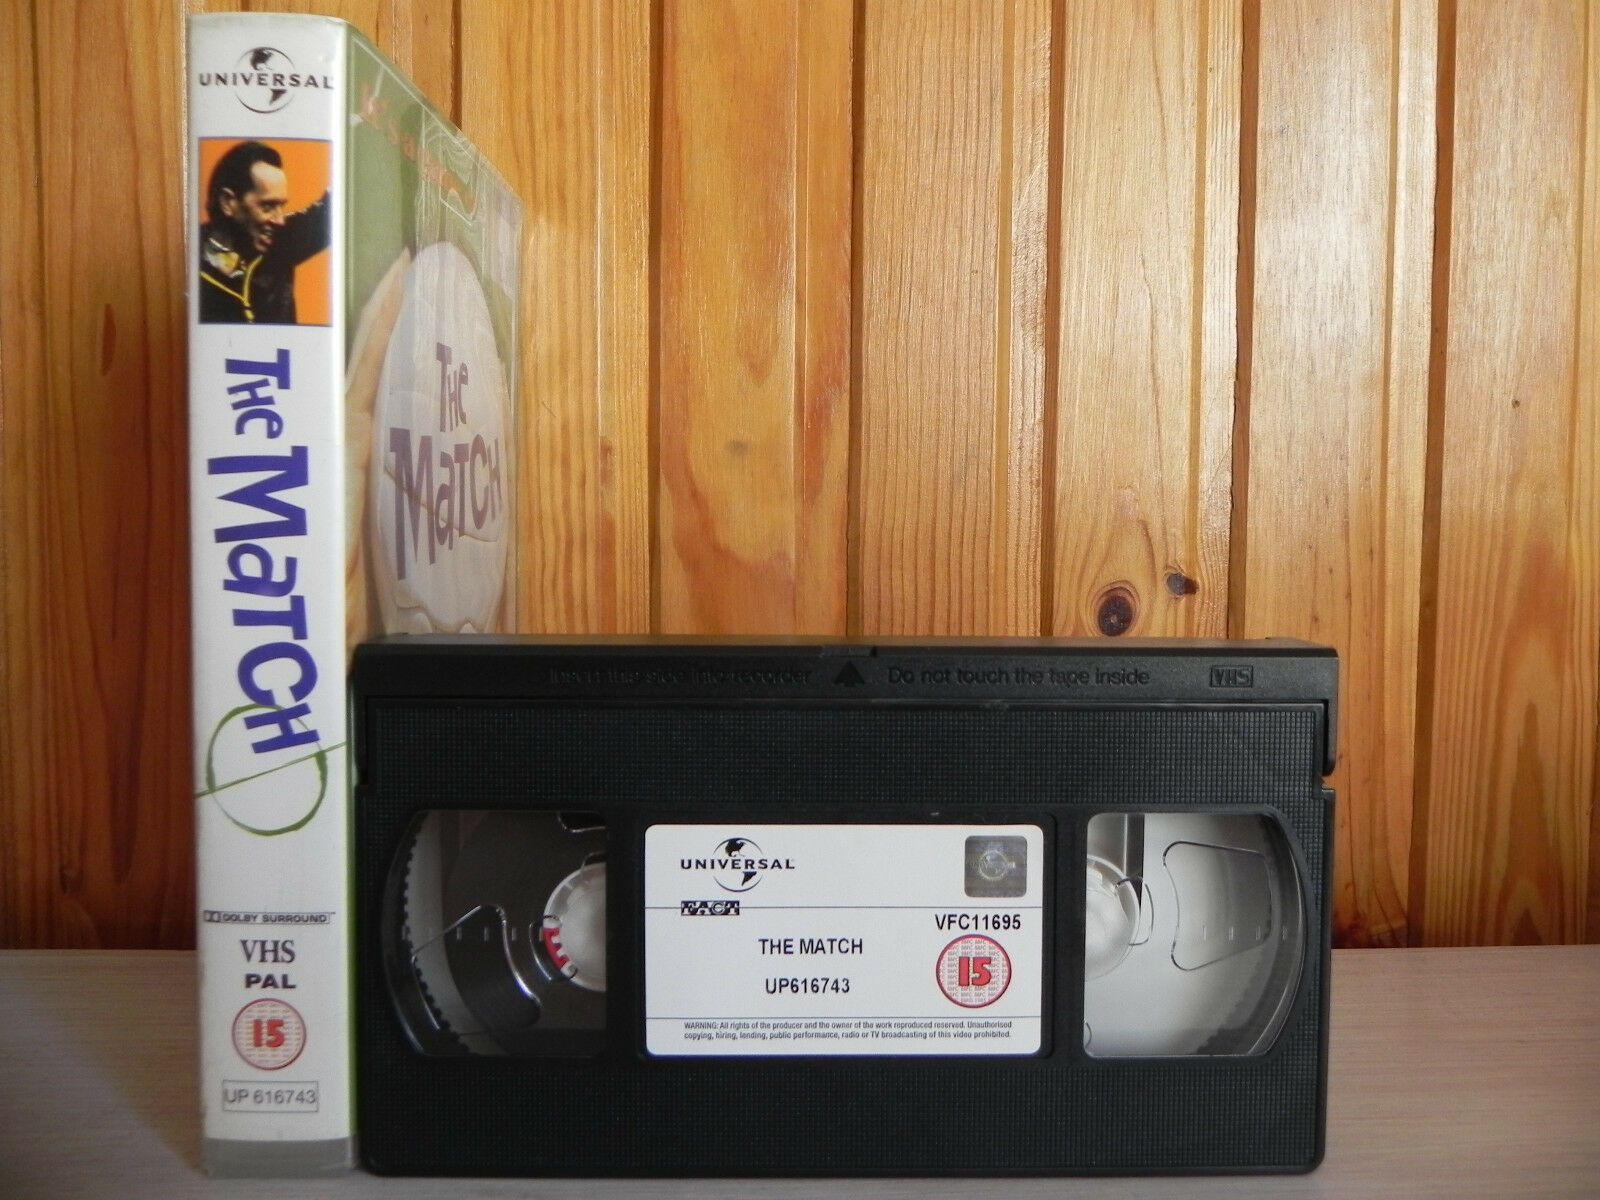 The Match - Big Box Rental - Rare Football - Romantic Comedy - Pal Video - VHS